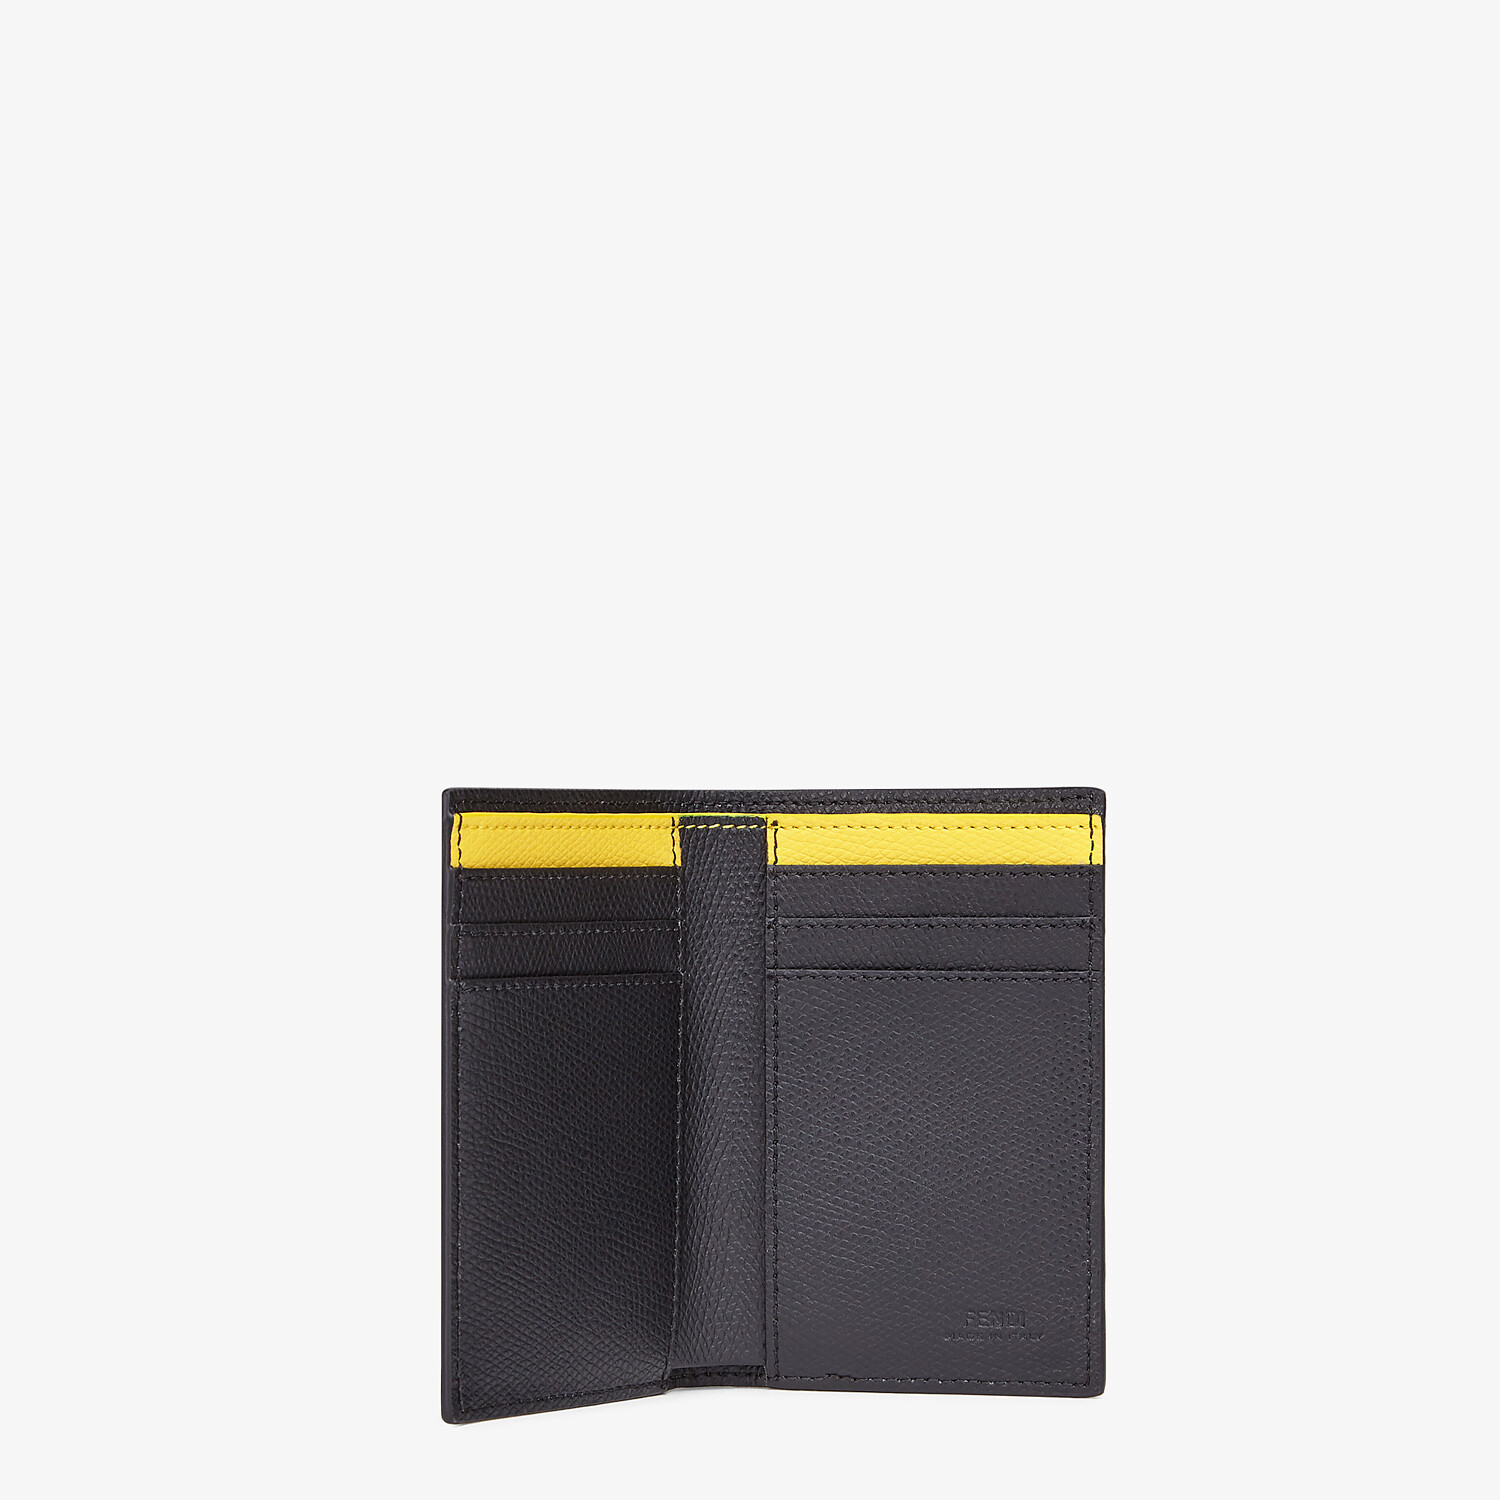 FENDI CARD HOLDER - Yellow leather wallet - view 3 detail